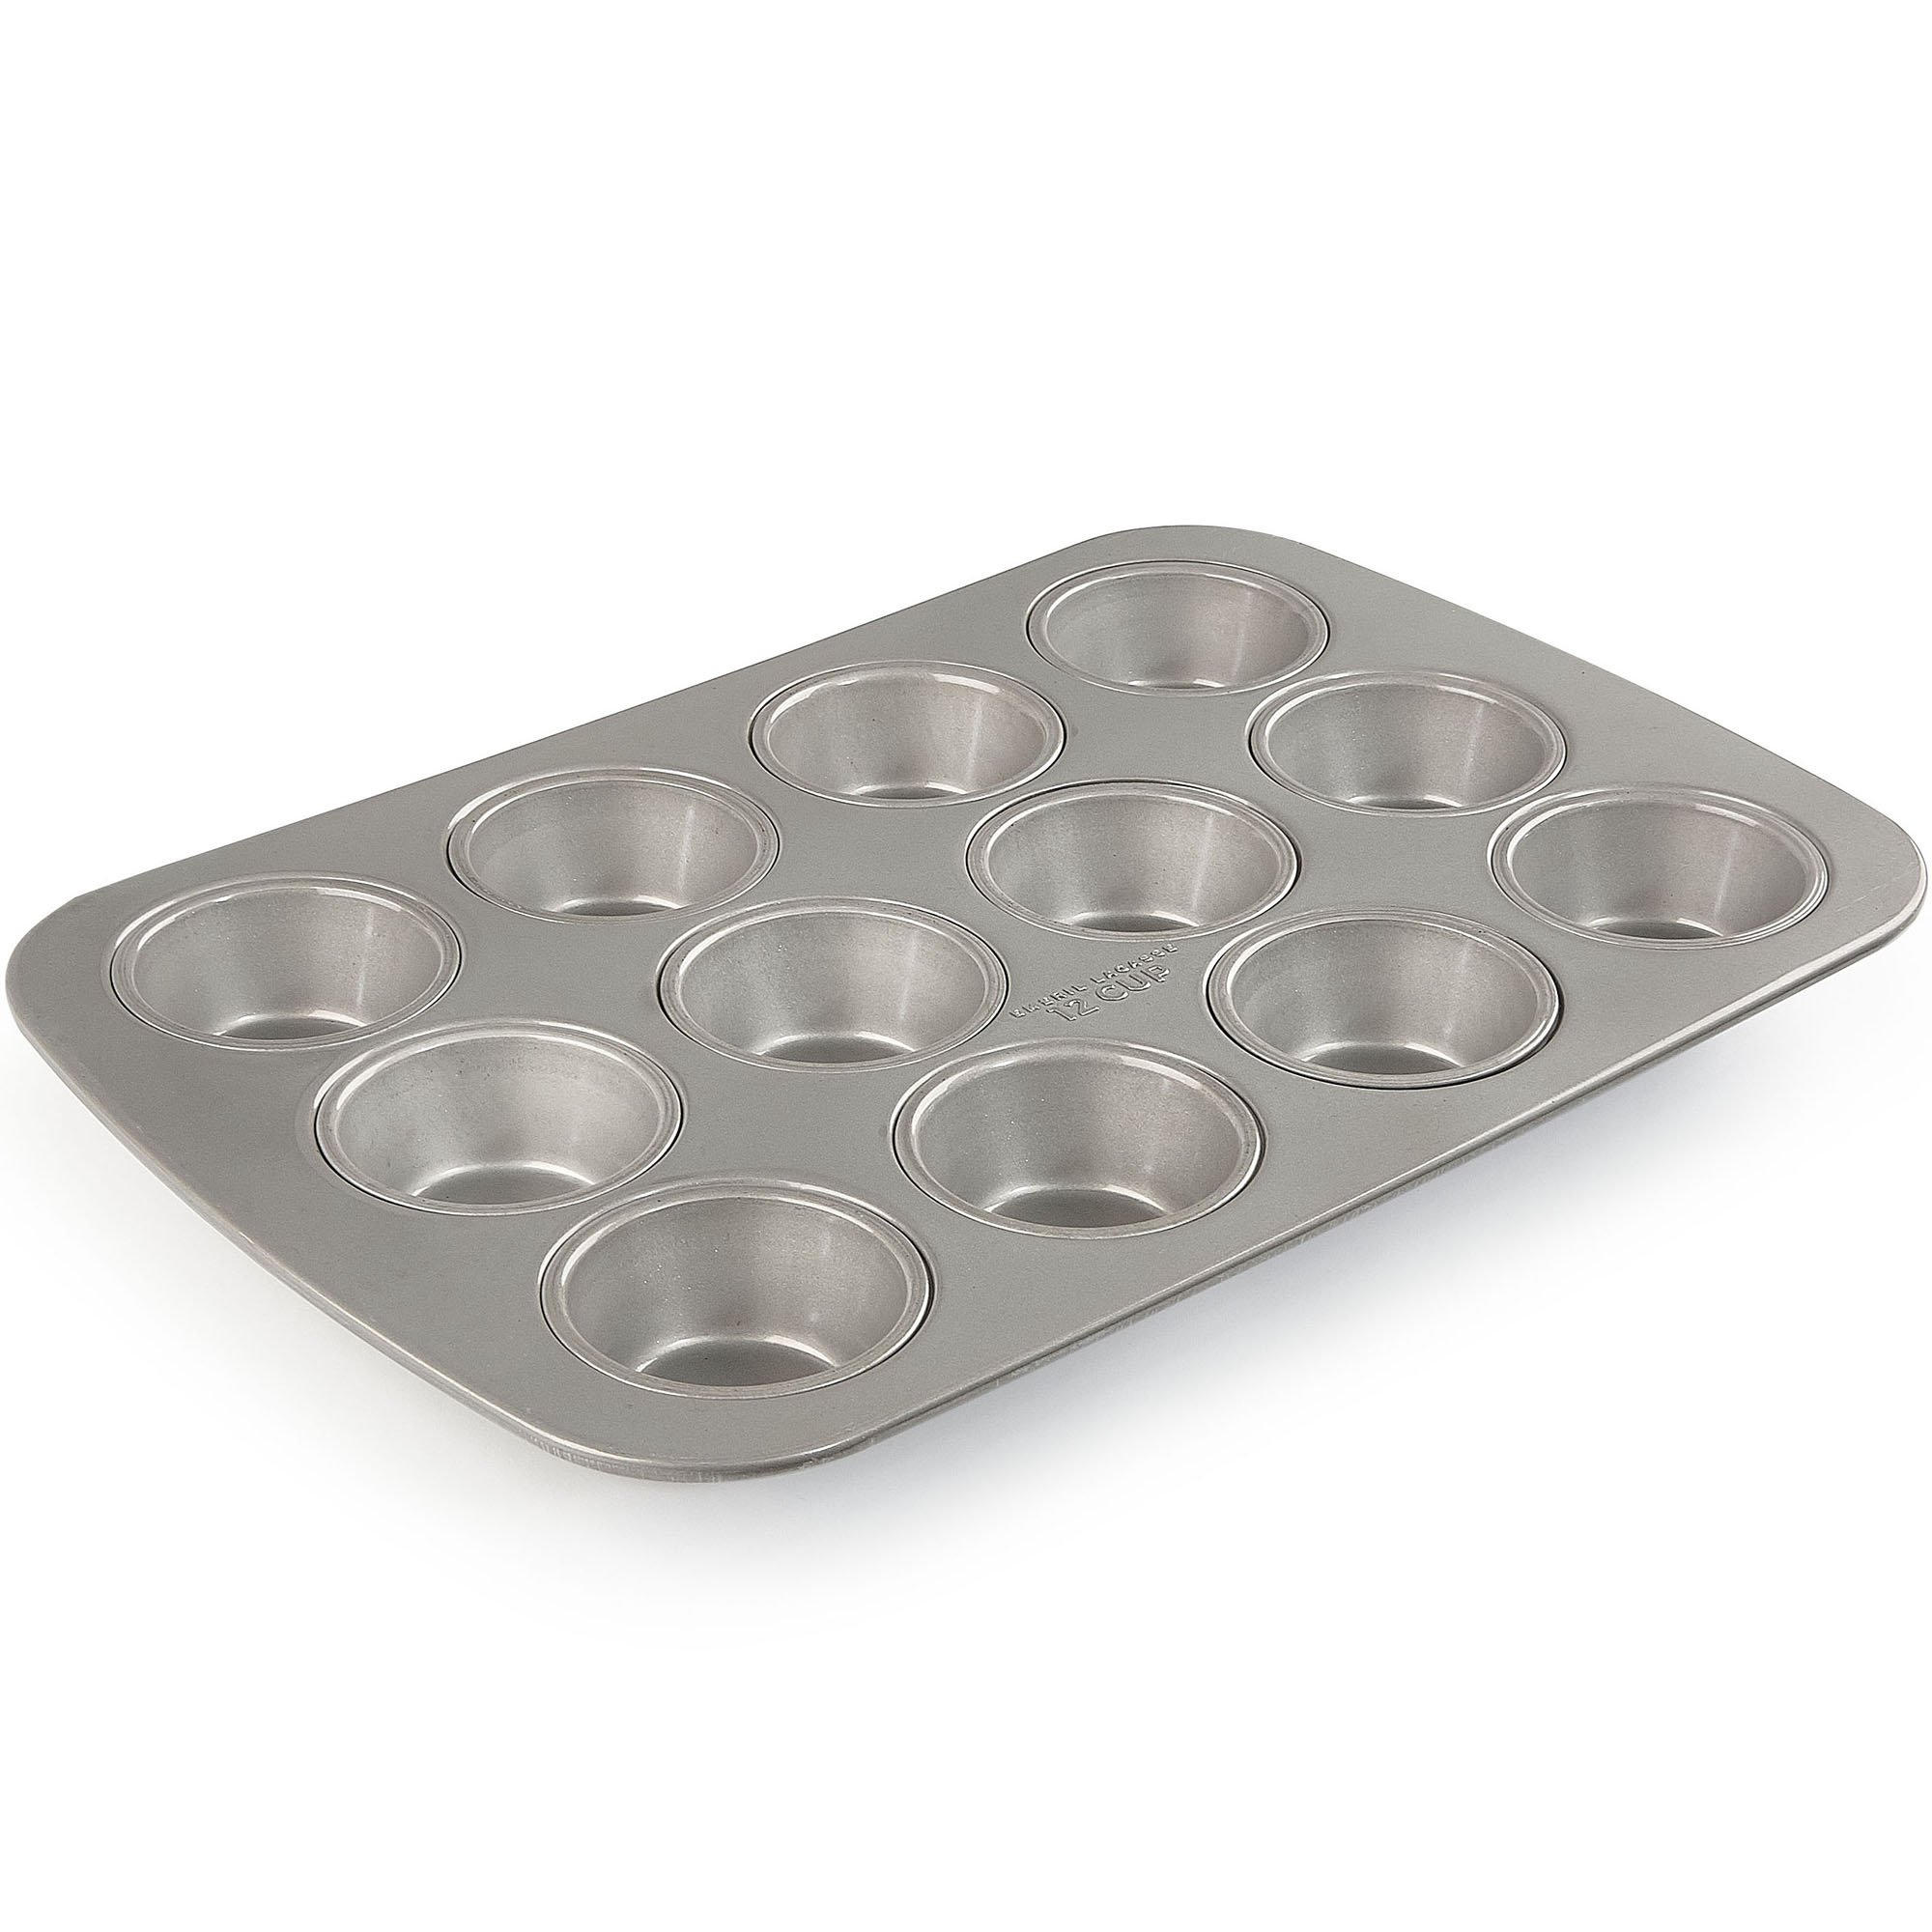 Emeril Lagasse 62675 Aluminized Steel Nonstick 12-Cup Muffin Pan by Emeril Lagasse (Image #1)